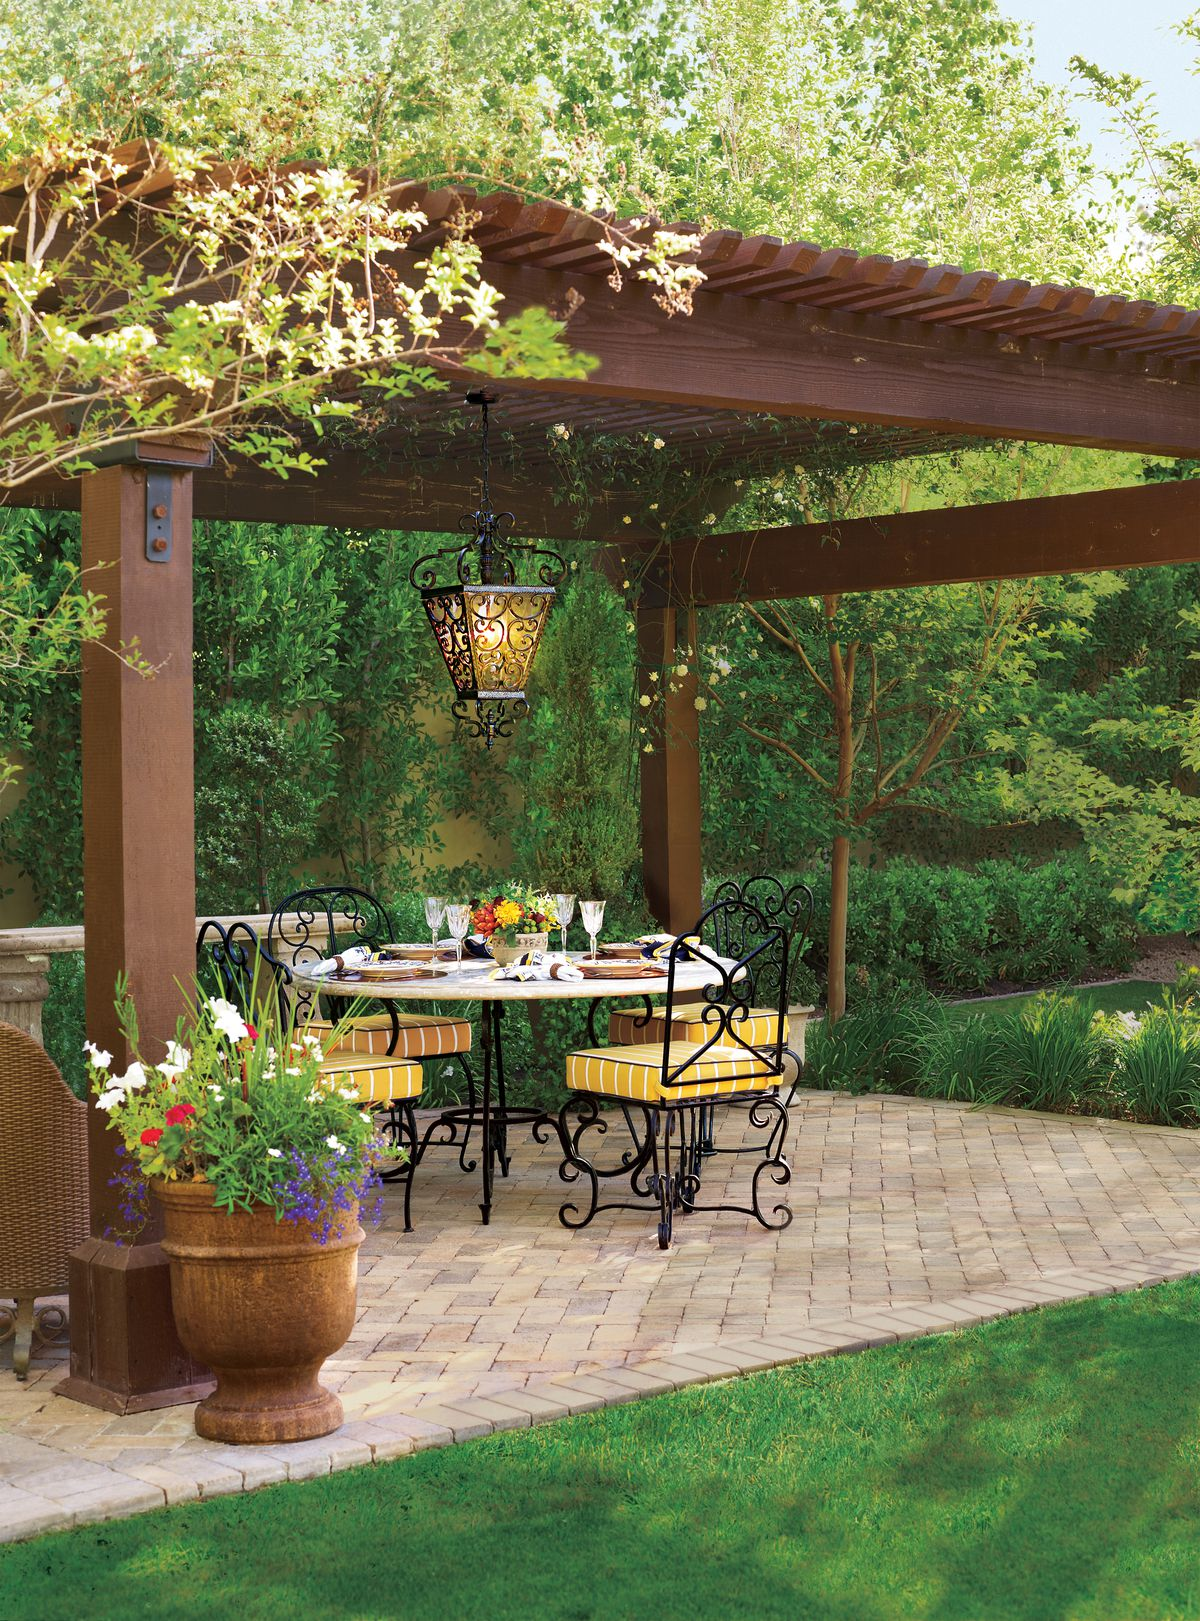 Patio with a pergola and outdoor tables and chairs.